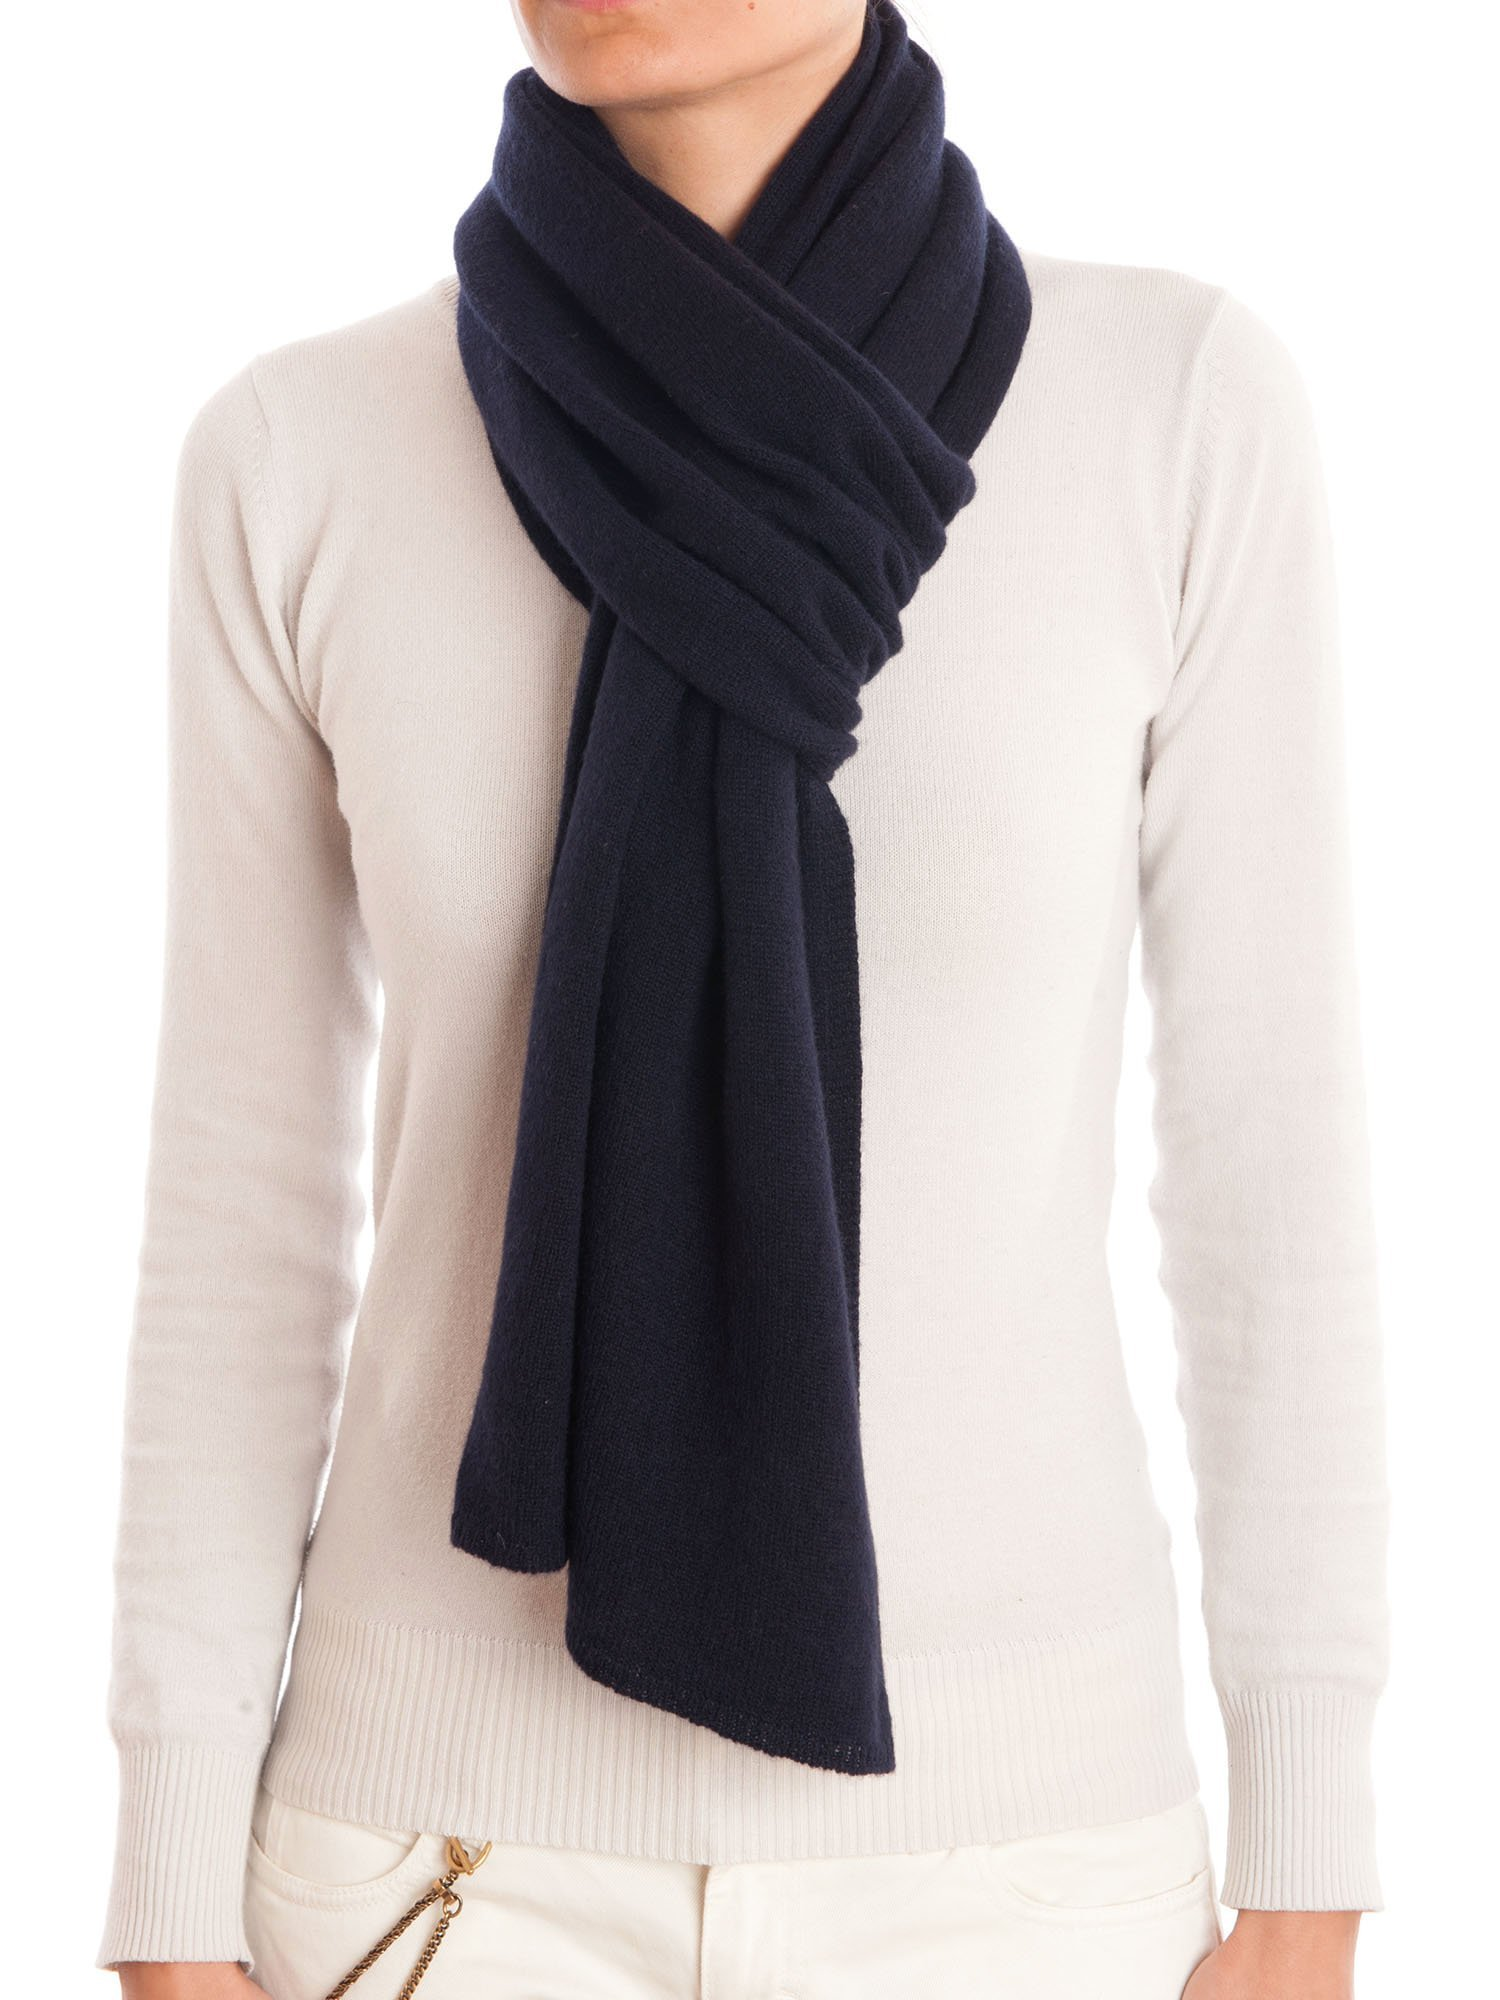 Dalle Piane Cashmere - Scarf 100% cashmere - Made in Italy - Woman/Man, Color: Blue, One size